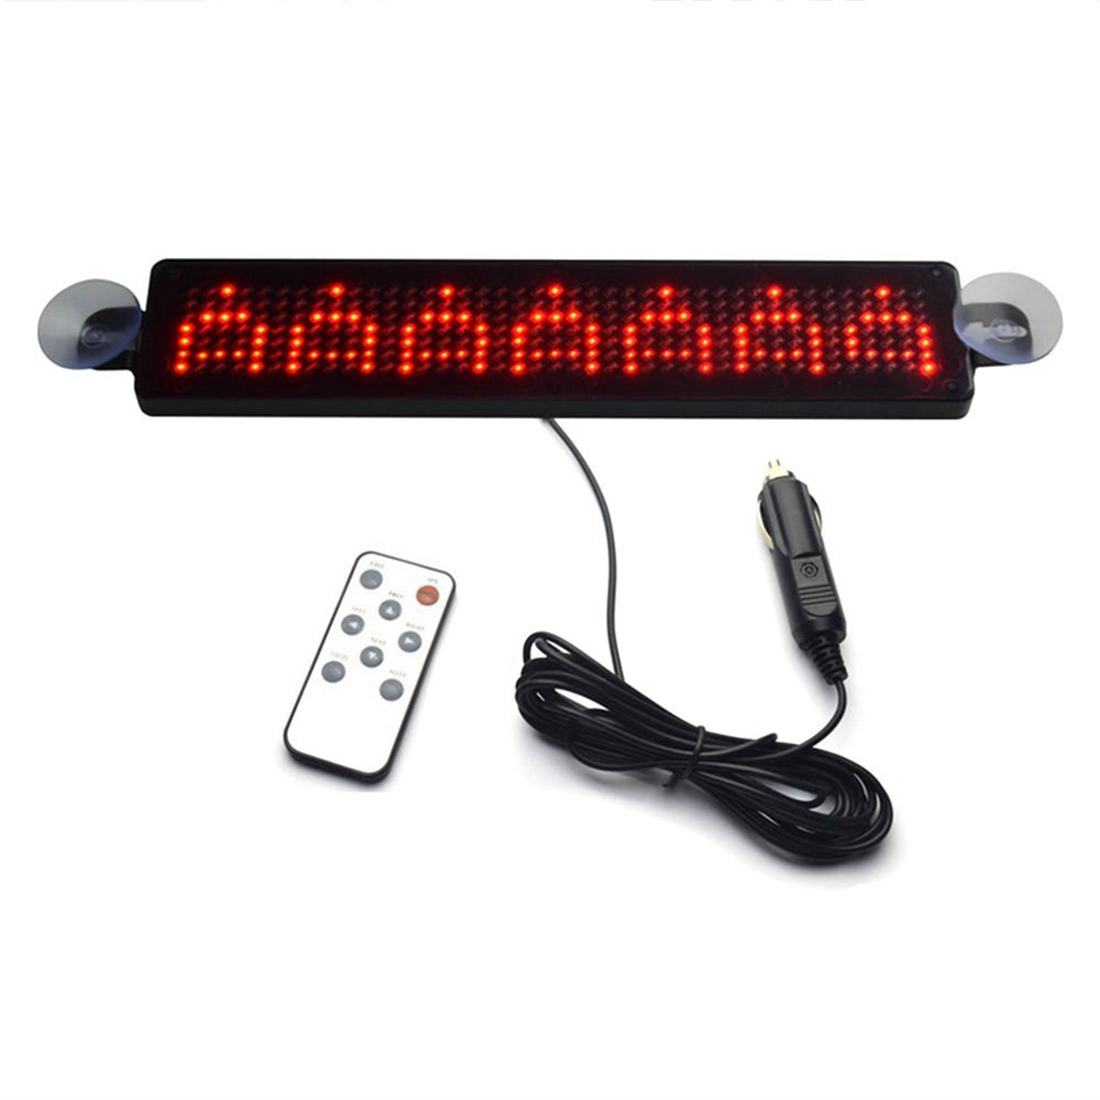 12V Car LED Programmable Message Sign Scrolling Display Board with Remote (Red)